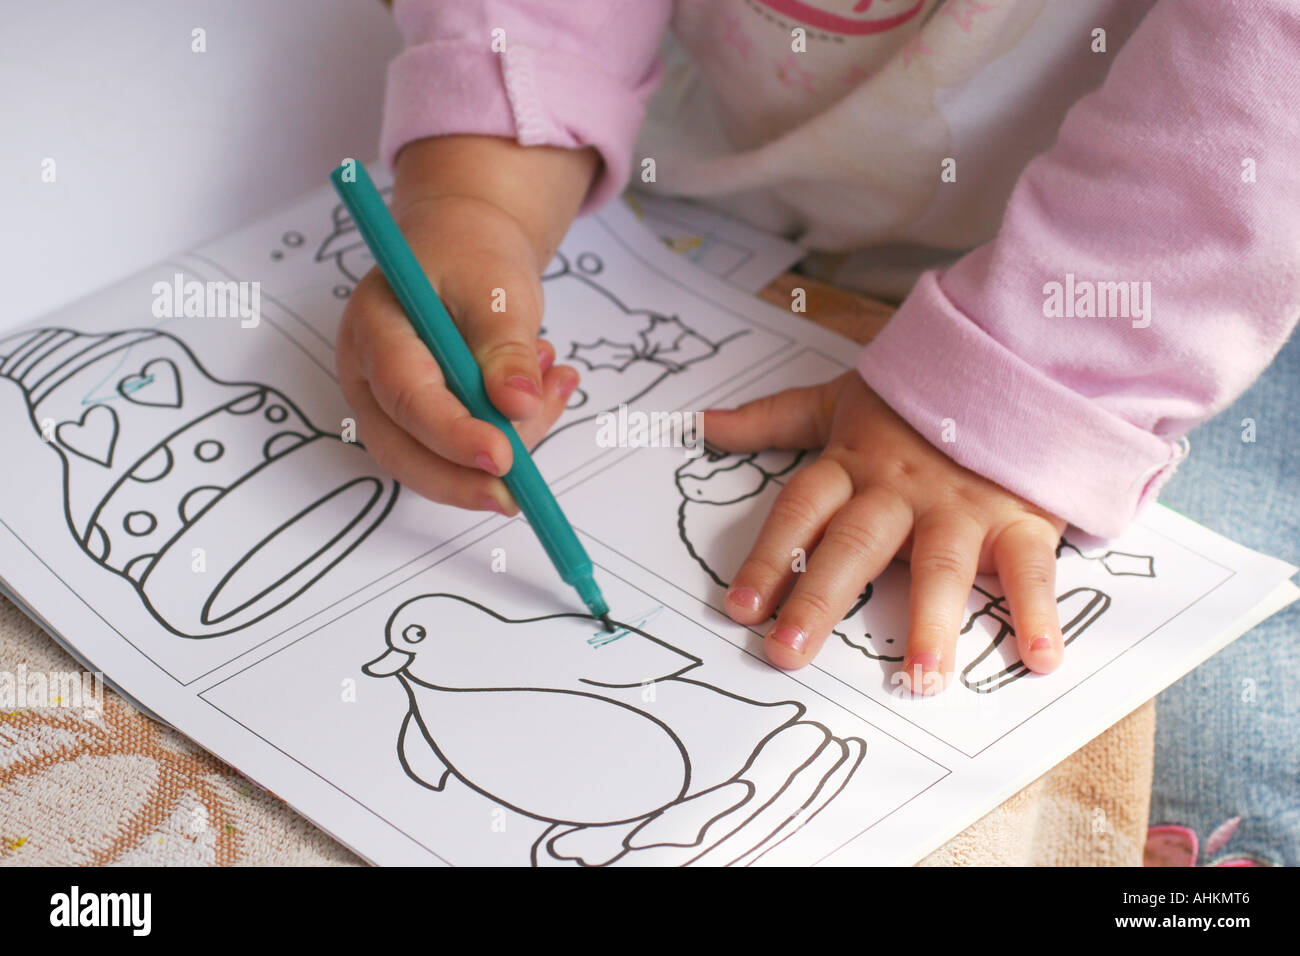 Close Shot Of Hands Very Young Child Drawing In A Childs Colouring Book